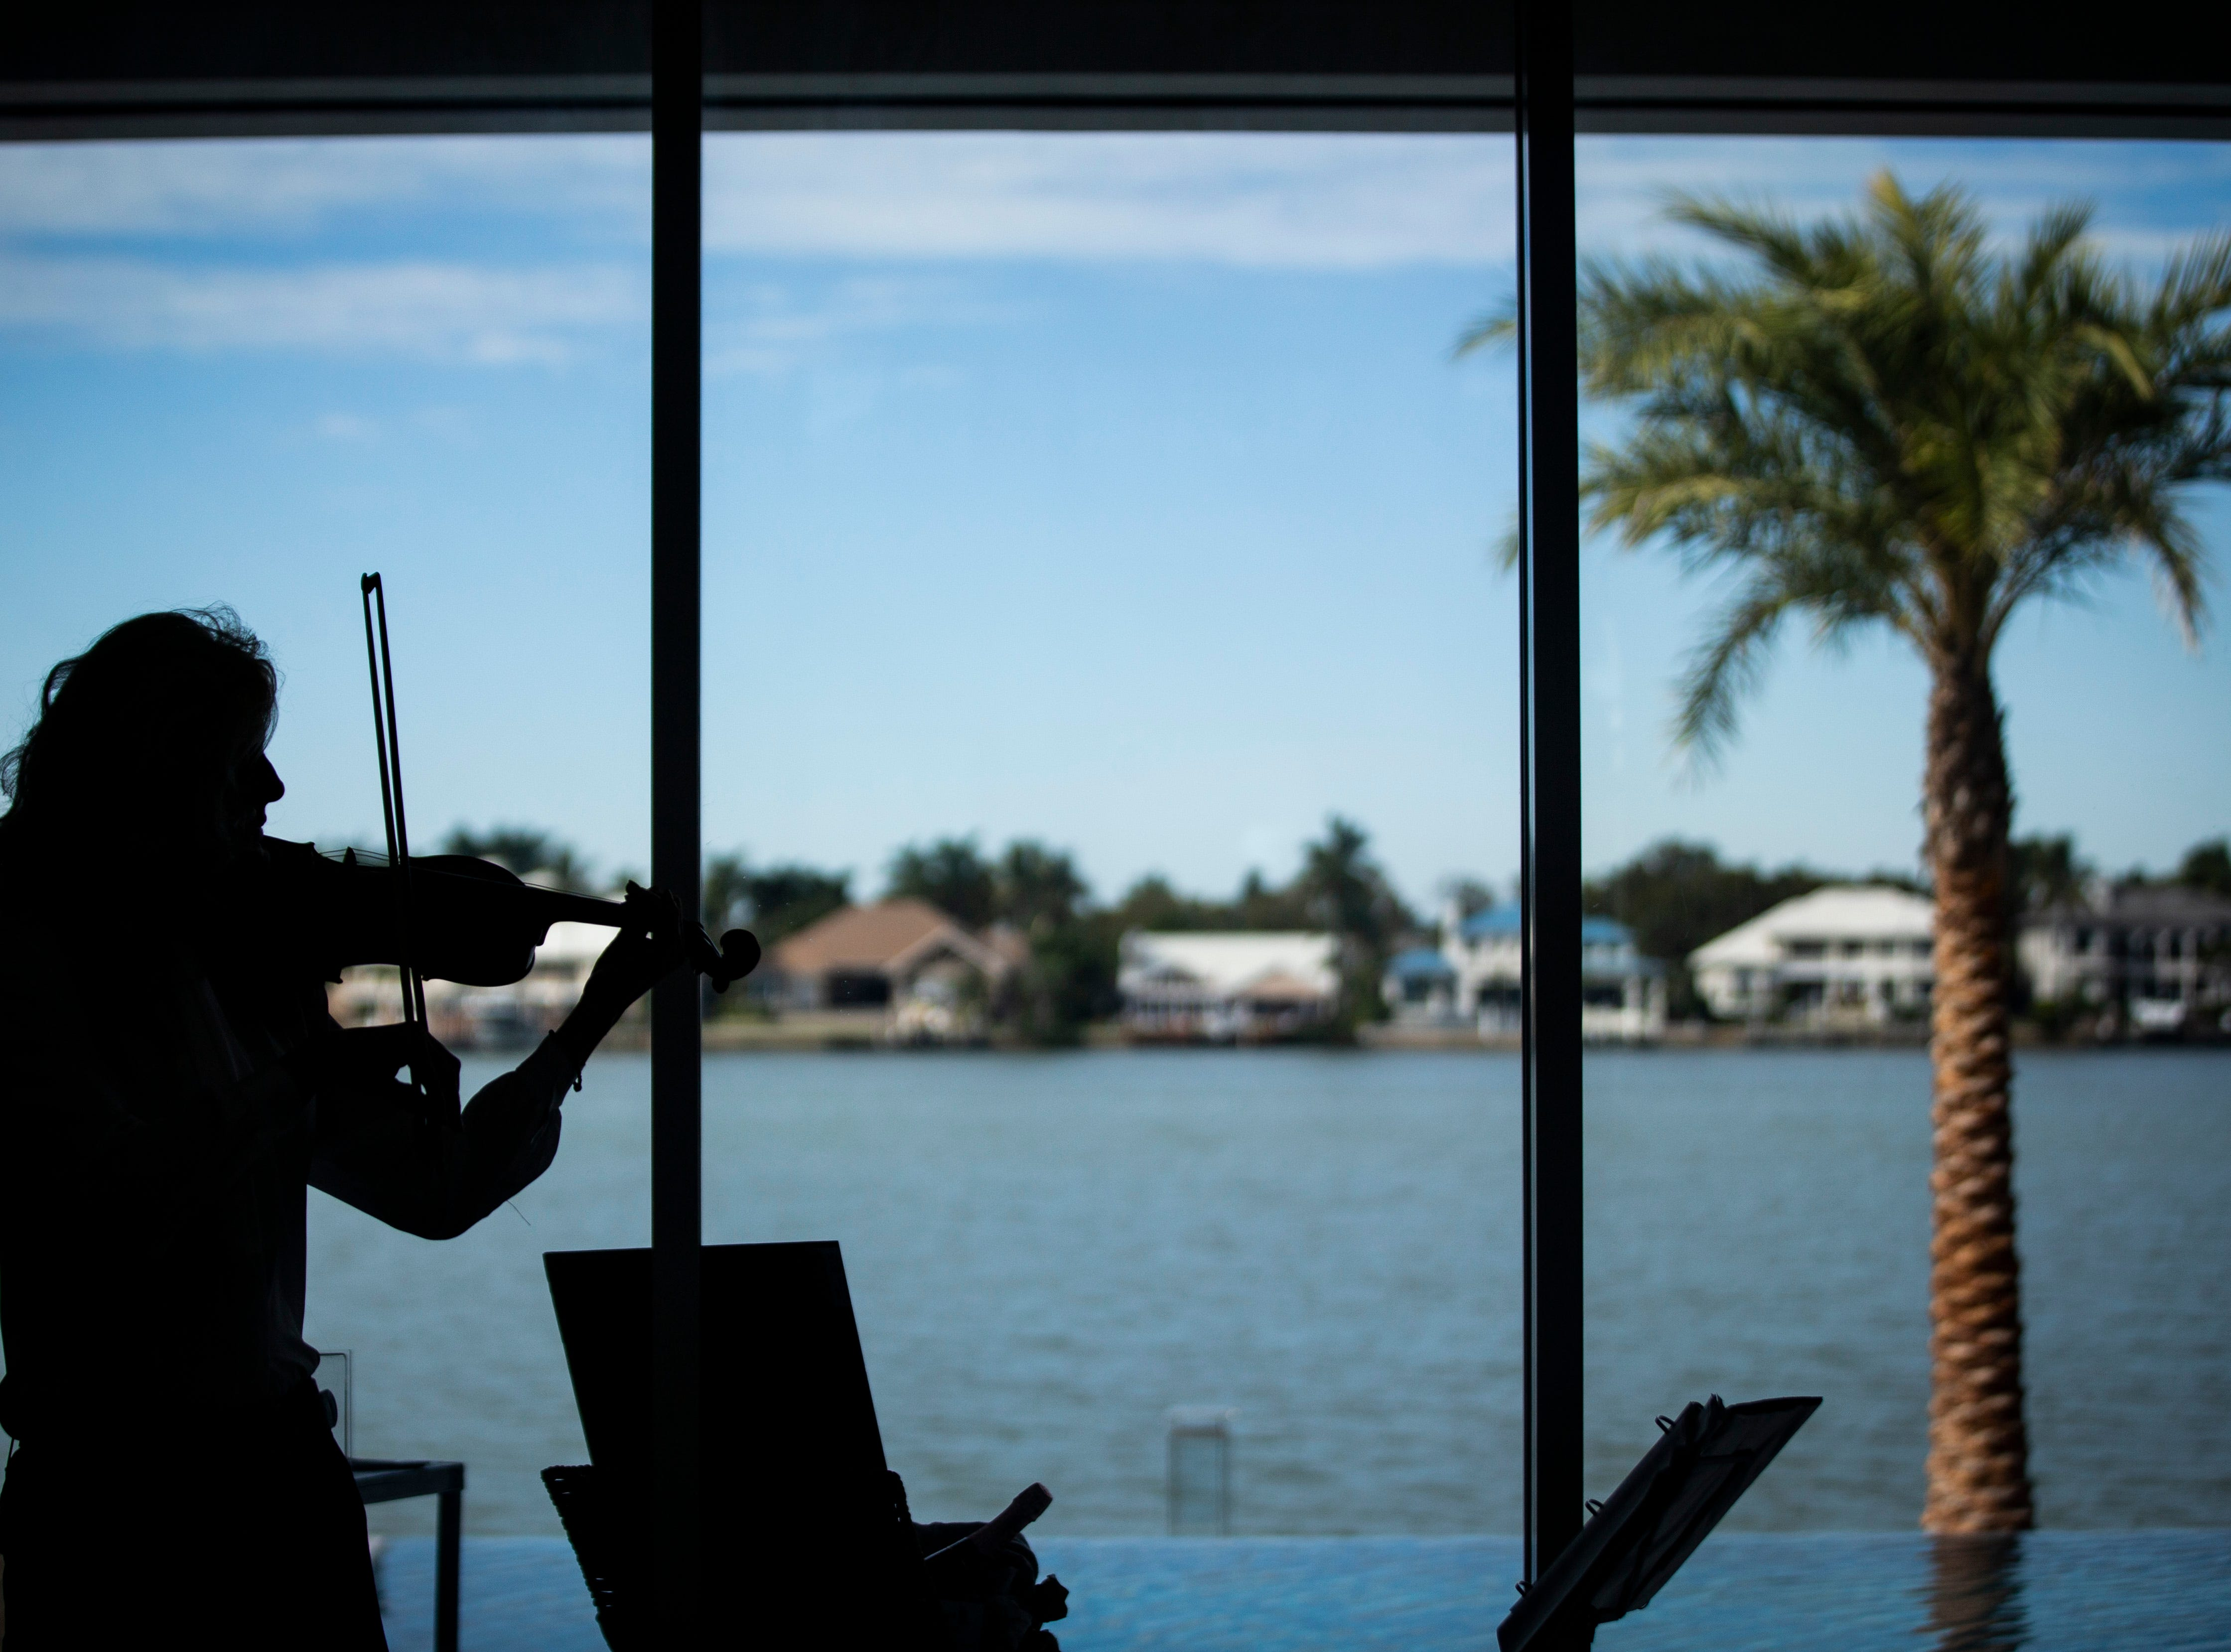 Bianca Cirakovic plays the violin during the 7th annual Kitchen Tour, hosted by the Naples Woman's Club in Naples on Wednesday, January 16, 2019. The tour featured speakers and entertainment at four different homes in the Naples area.